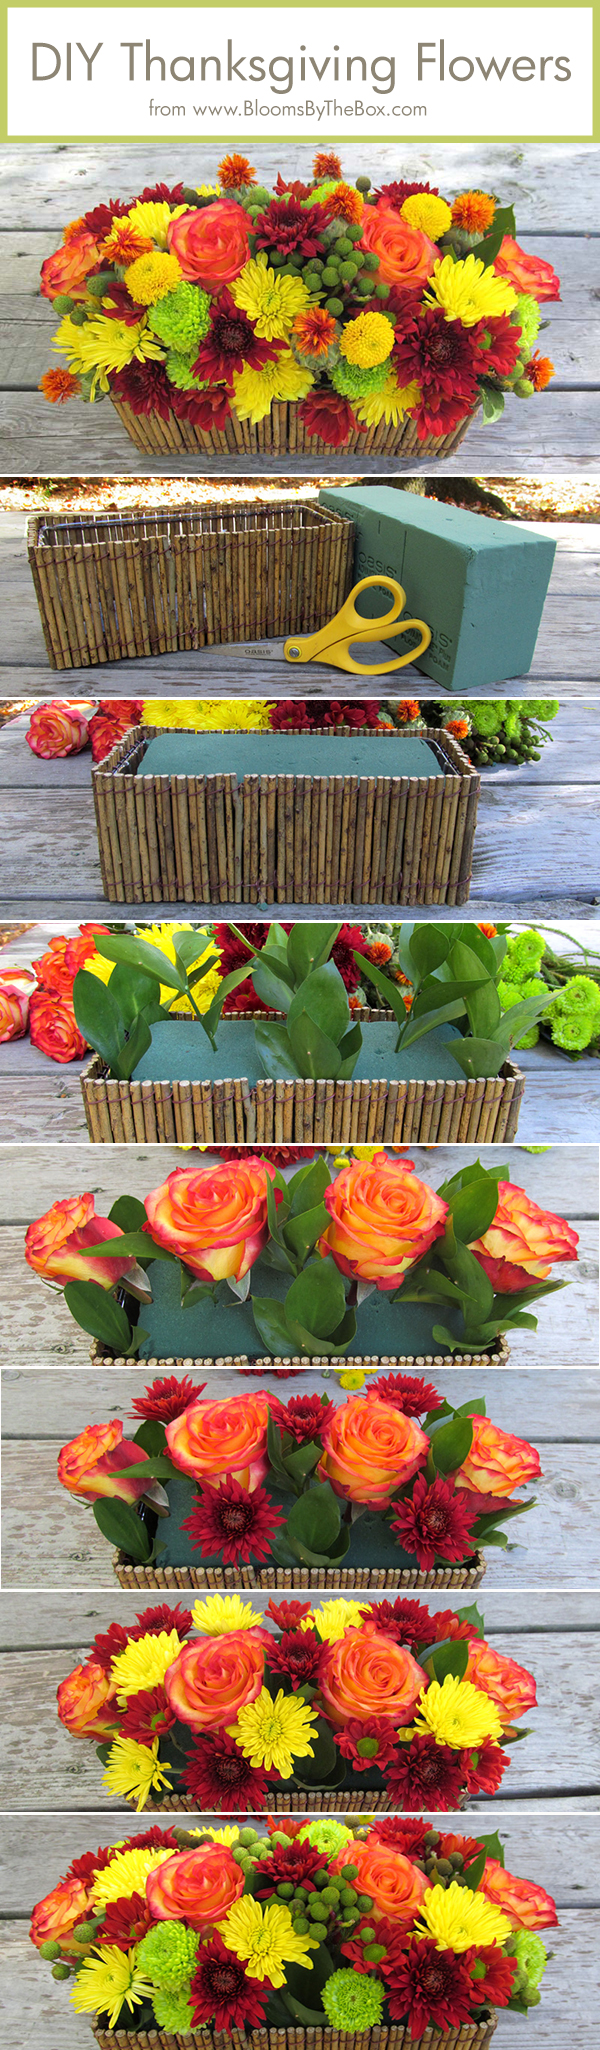 30 diy thanksgiving decoration ideas to setup a fall for Diy thanksgiving floral centerpieces